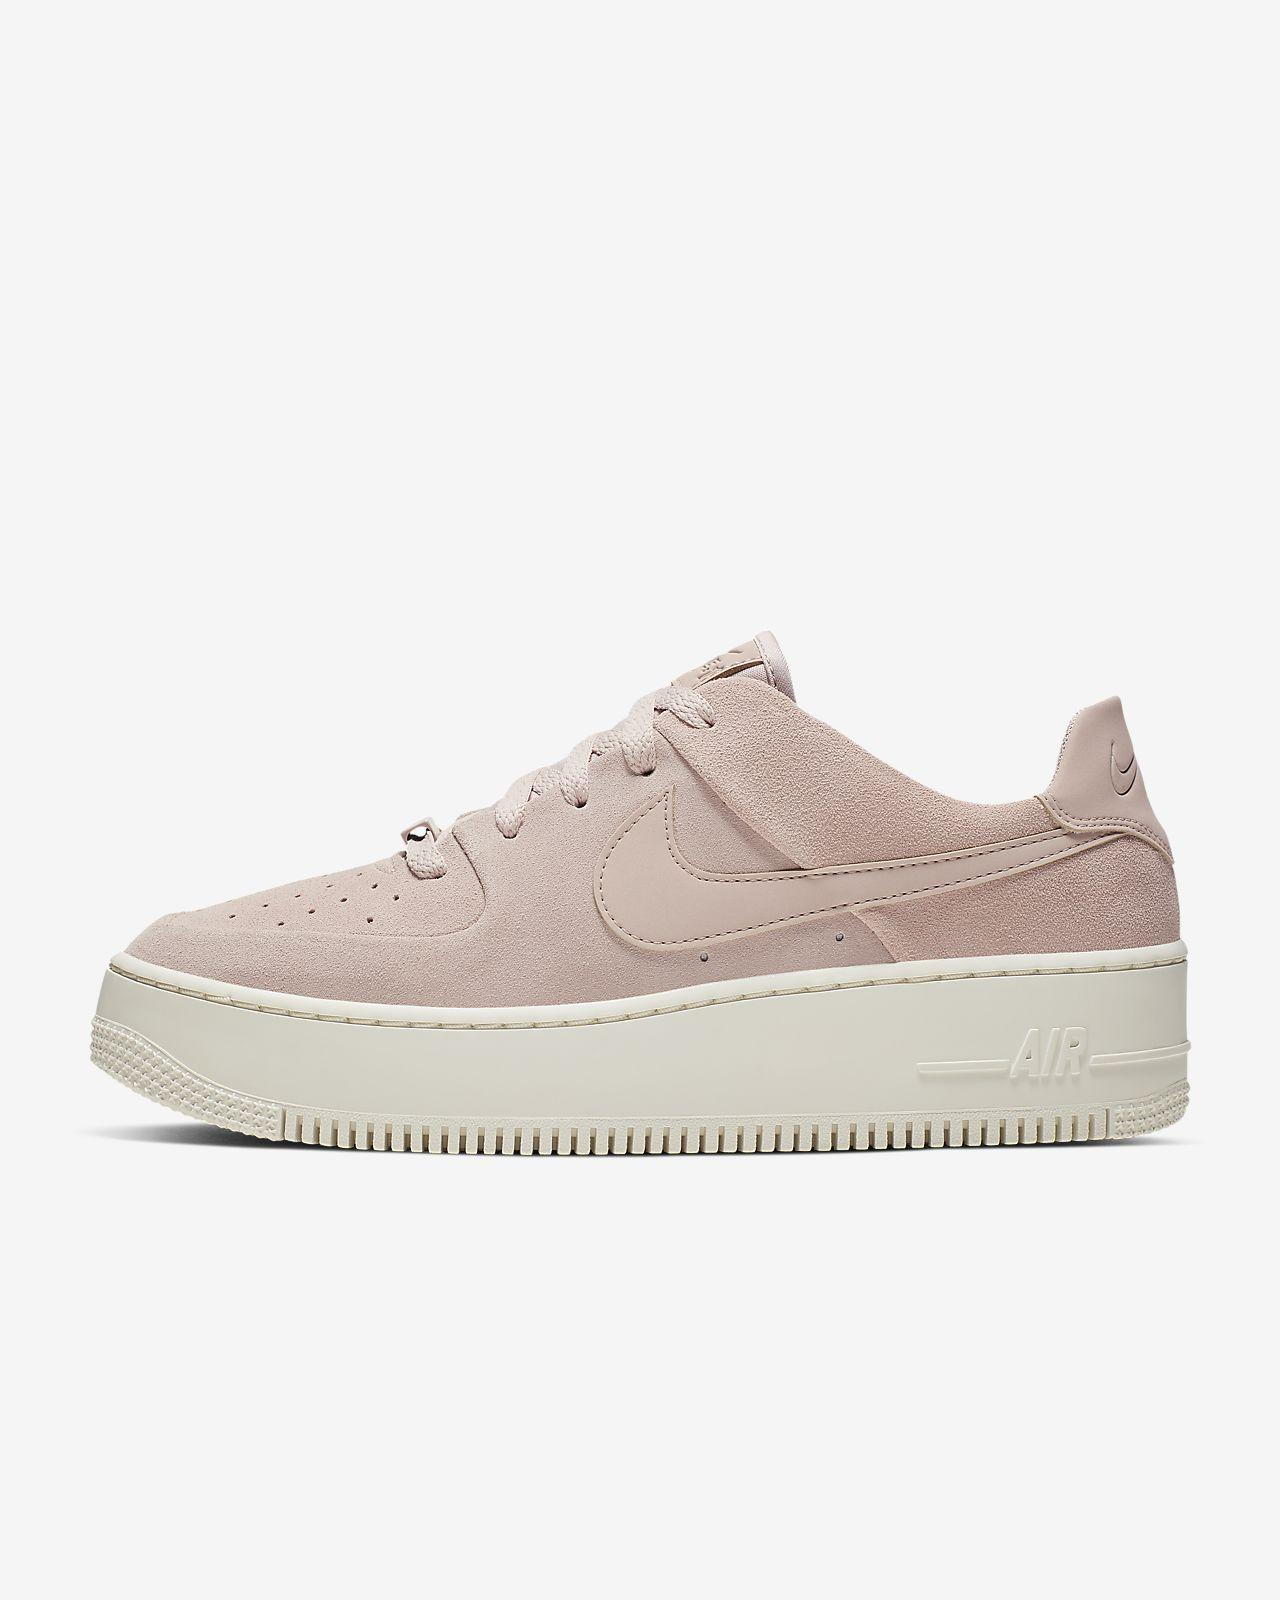 timeless design 44d4e fa563 ... official chaussure nike air force 1 sage low pour femme eefdd 7890e